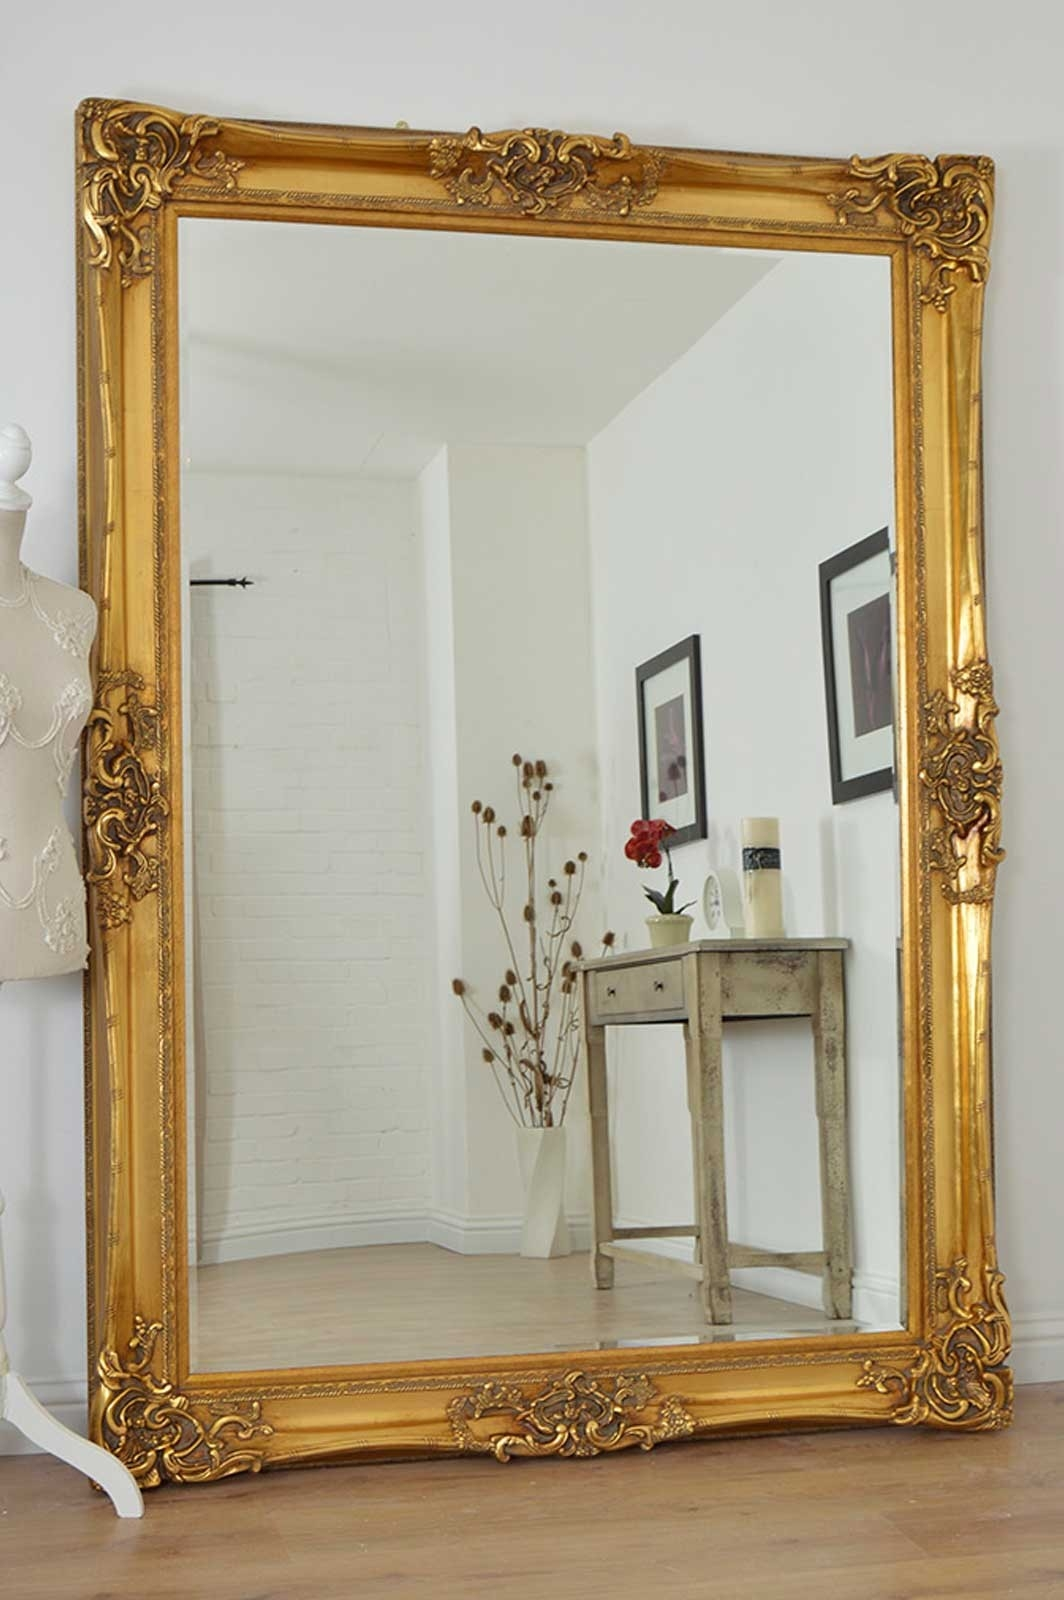 Large Gold Very Ornate Antique Design Wall Mirror 7ft X 5ft 213cm Inside Large Ornate Silver Mirror (View 9 of 15)